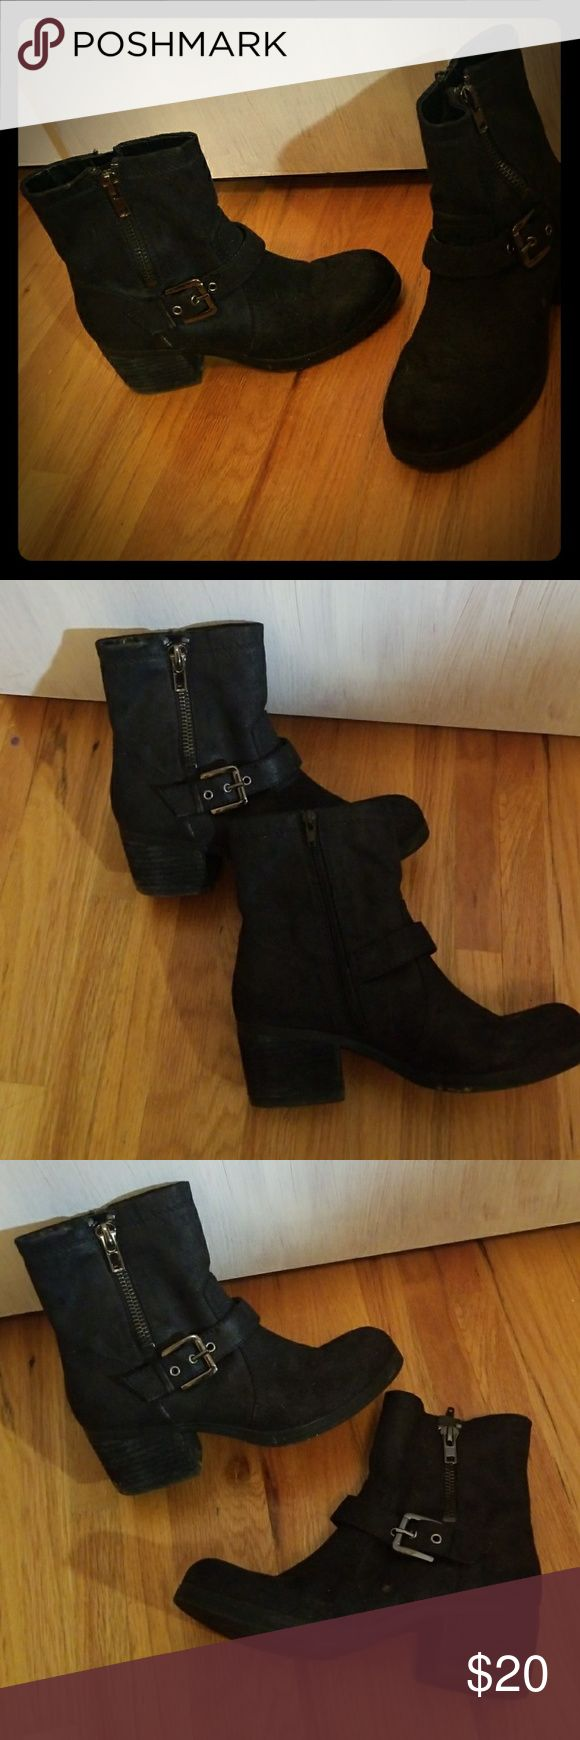 Black heeled boots Lightly used boots, black, soft smooth feel, comfortable for heels, side buckle, thick heels Carlos Santana Shoes Heeled Boots